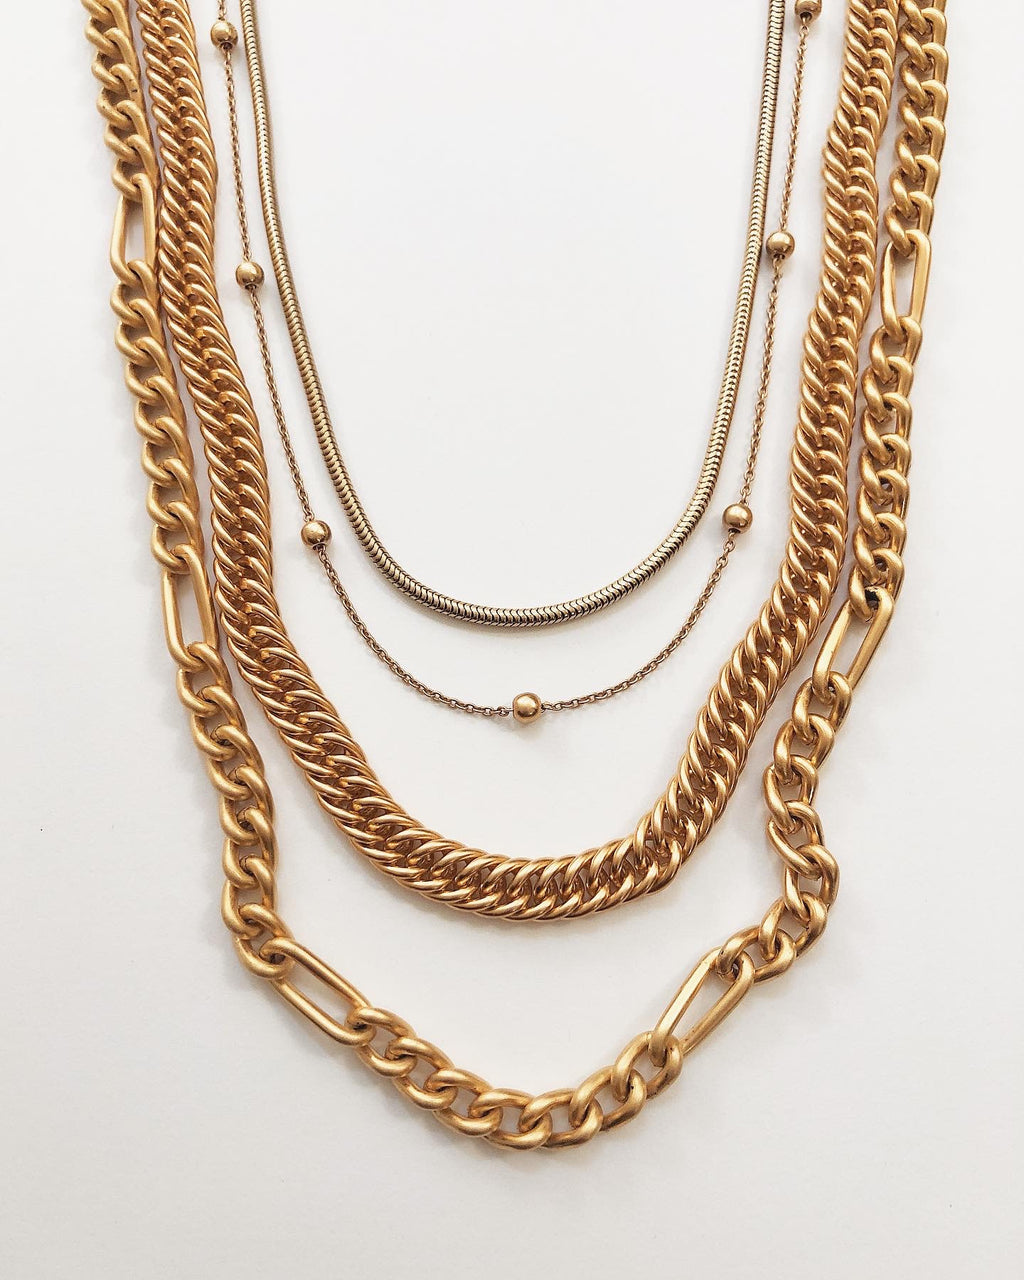 Aquinnah Layla Ball Chain Necklace in Gold